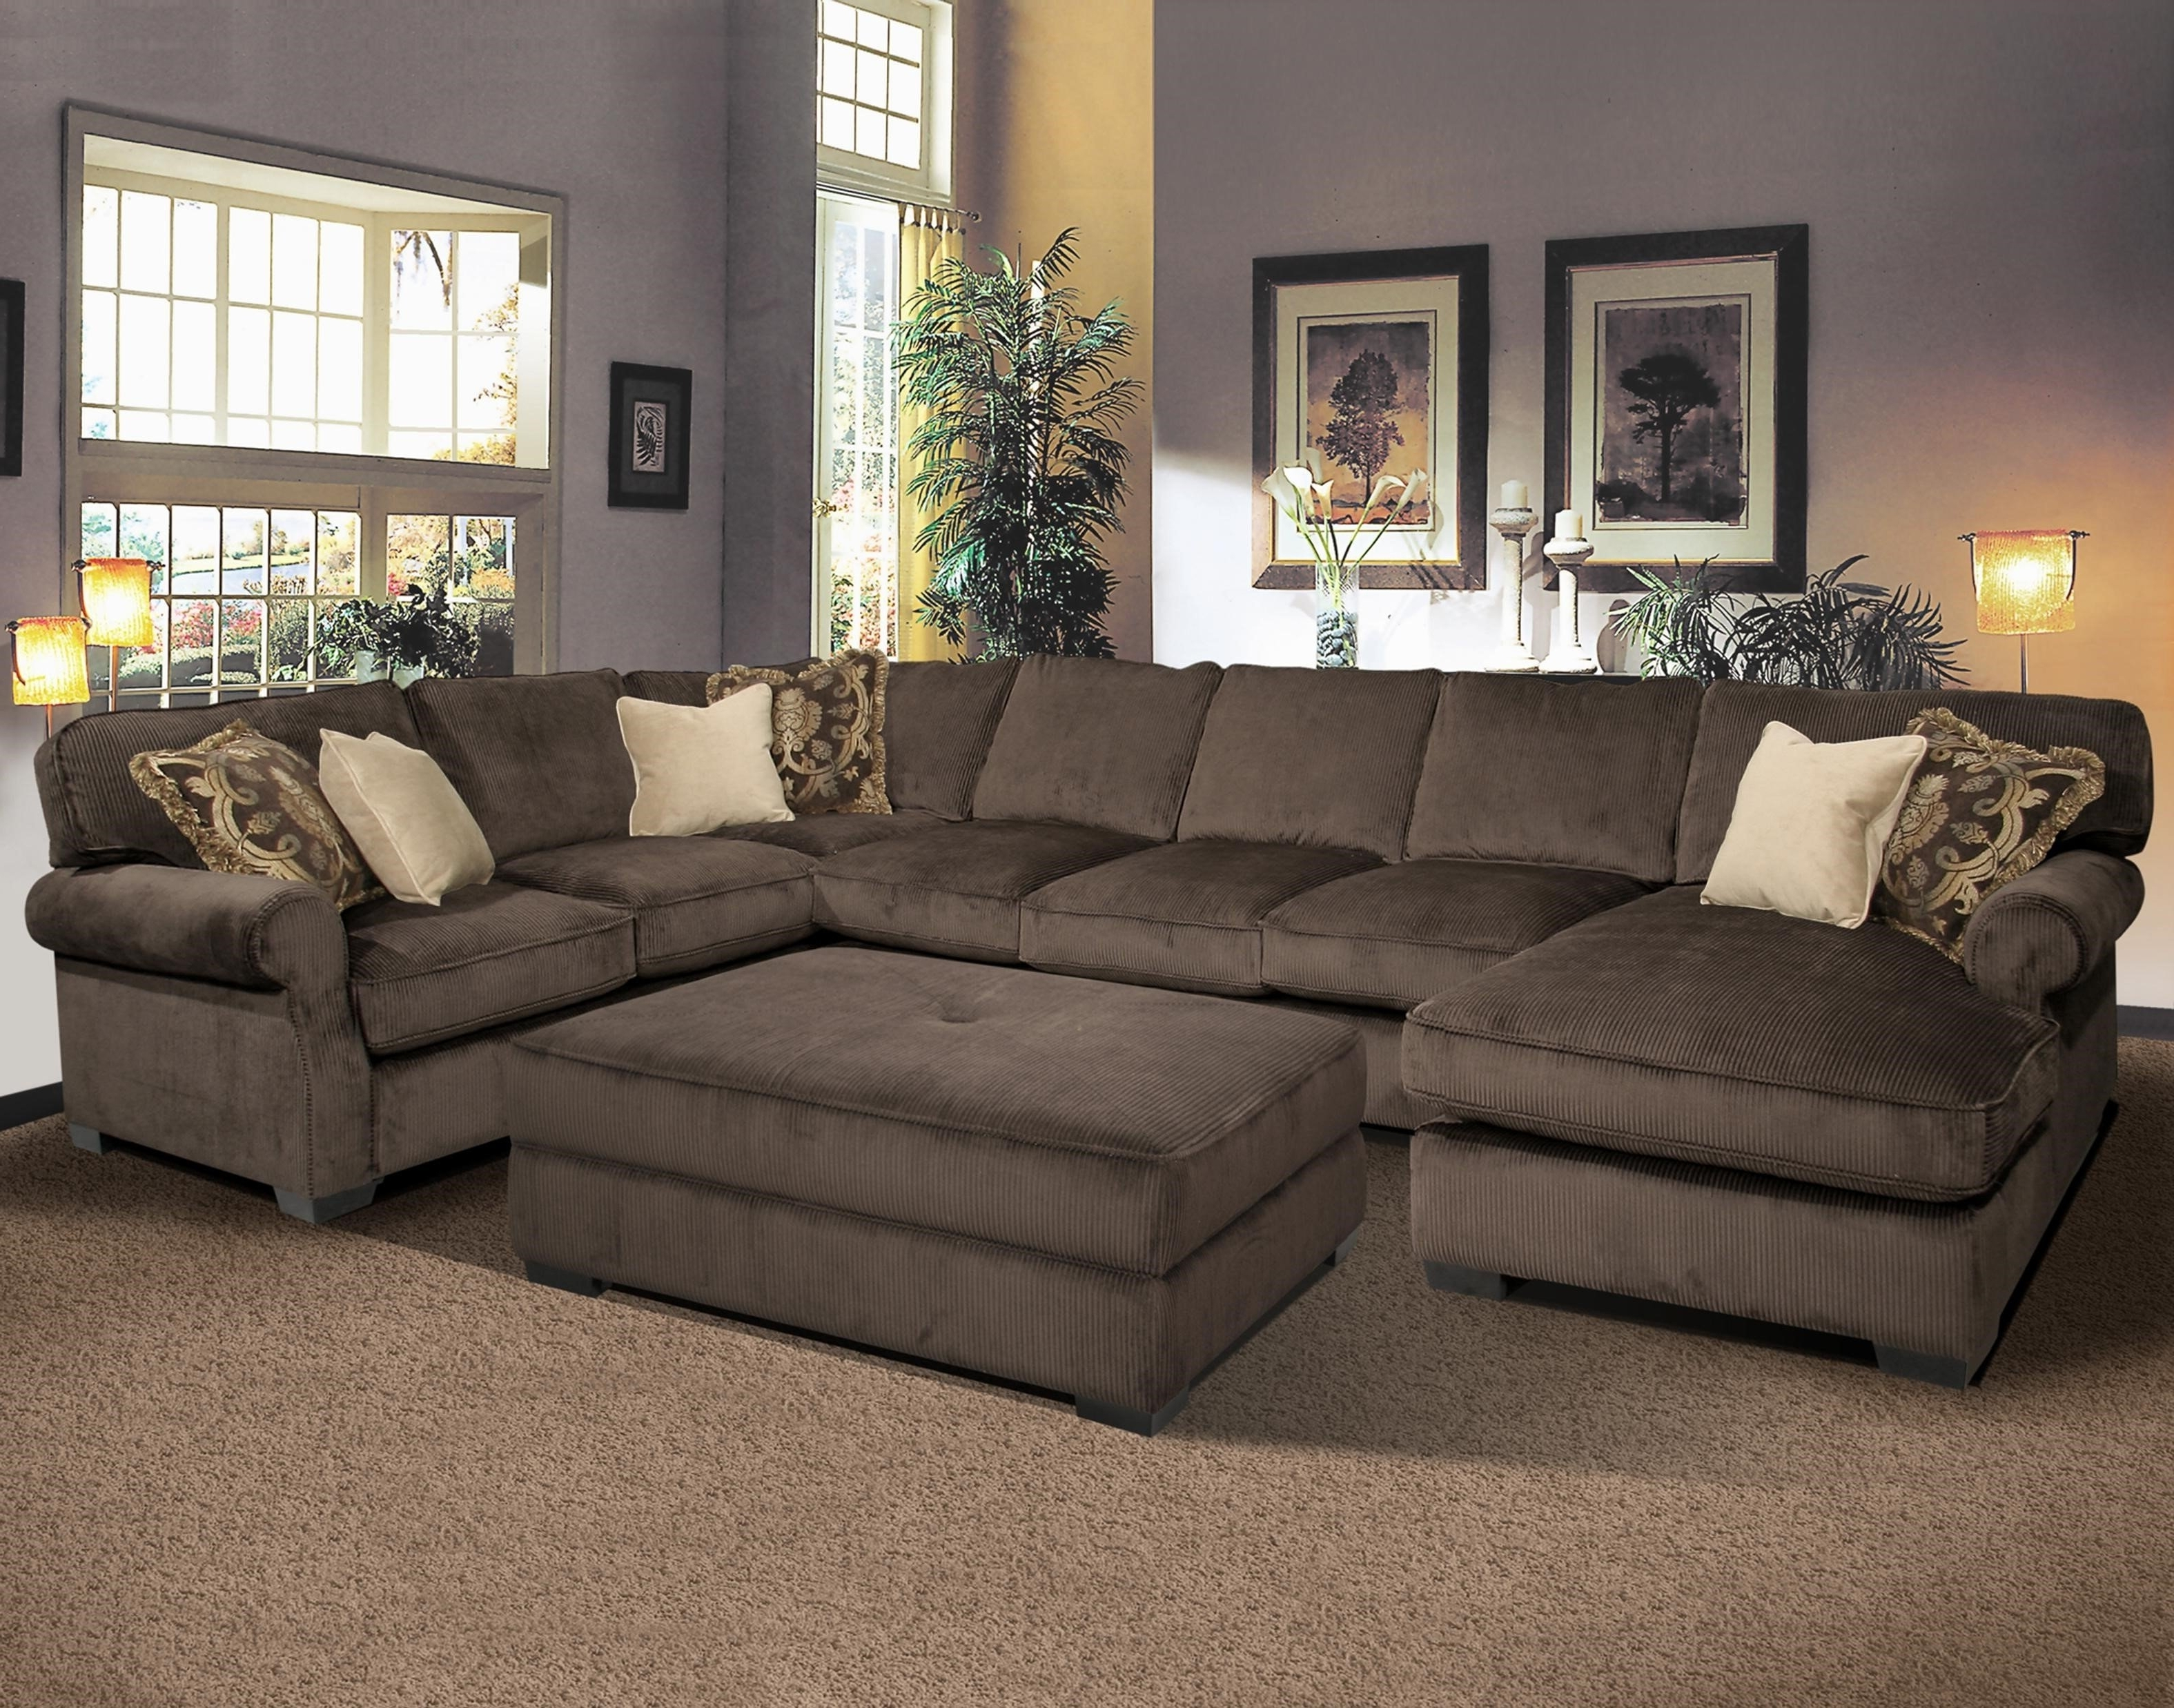 Well Liked Long Sectional Sofas With Chaise Intended For Sectional Sofas Cheap Sectional Sofa With Chaise Chaise Sectional (View 9 of 20)